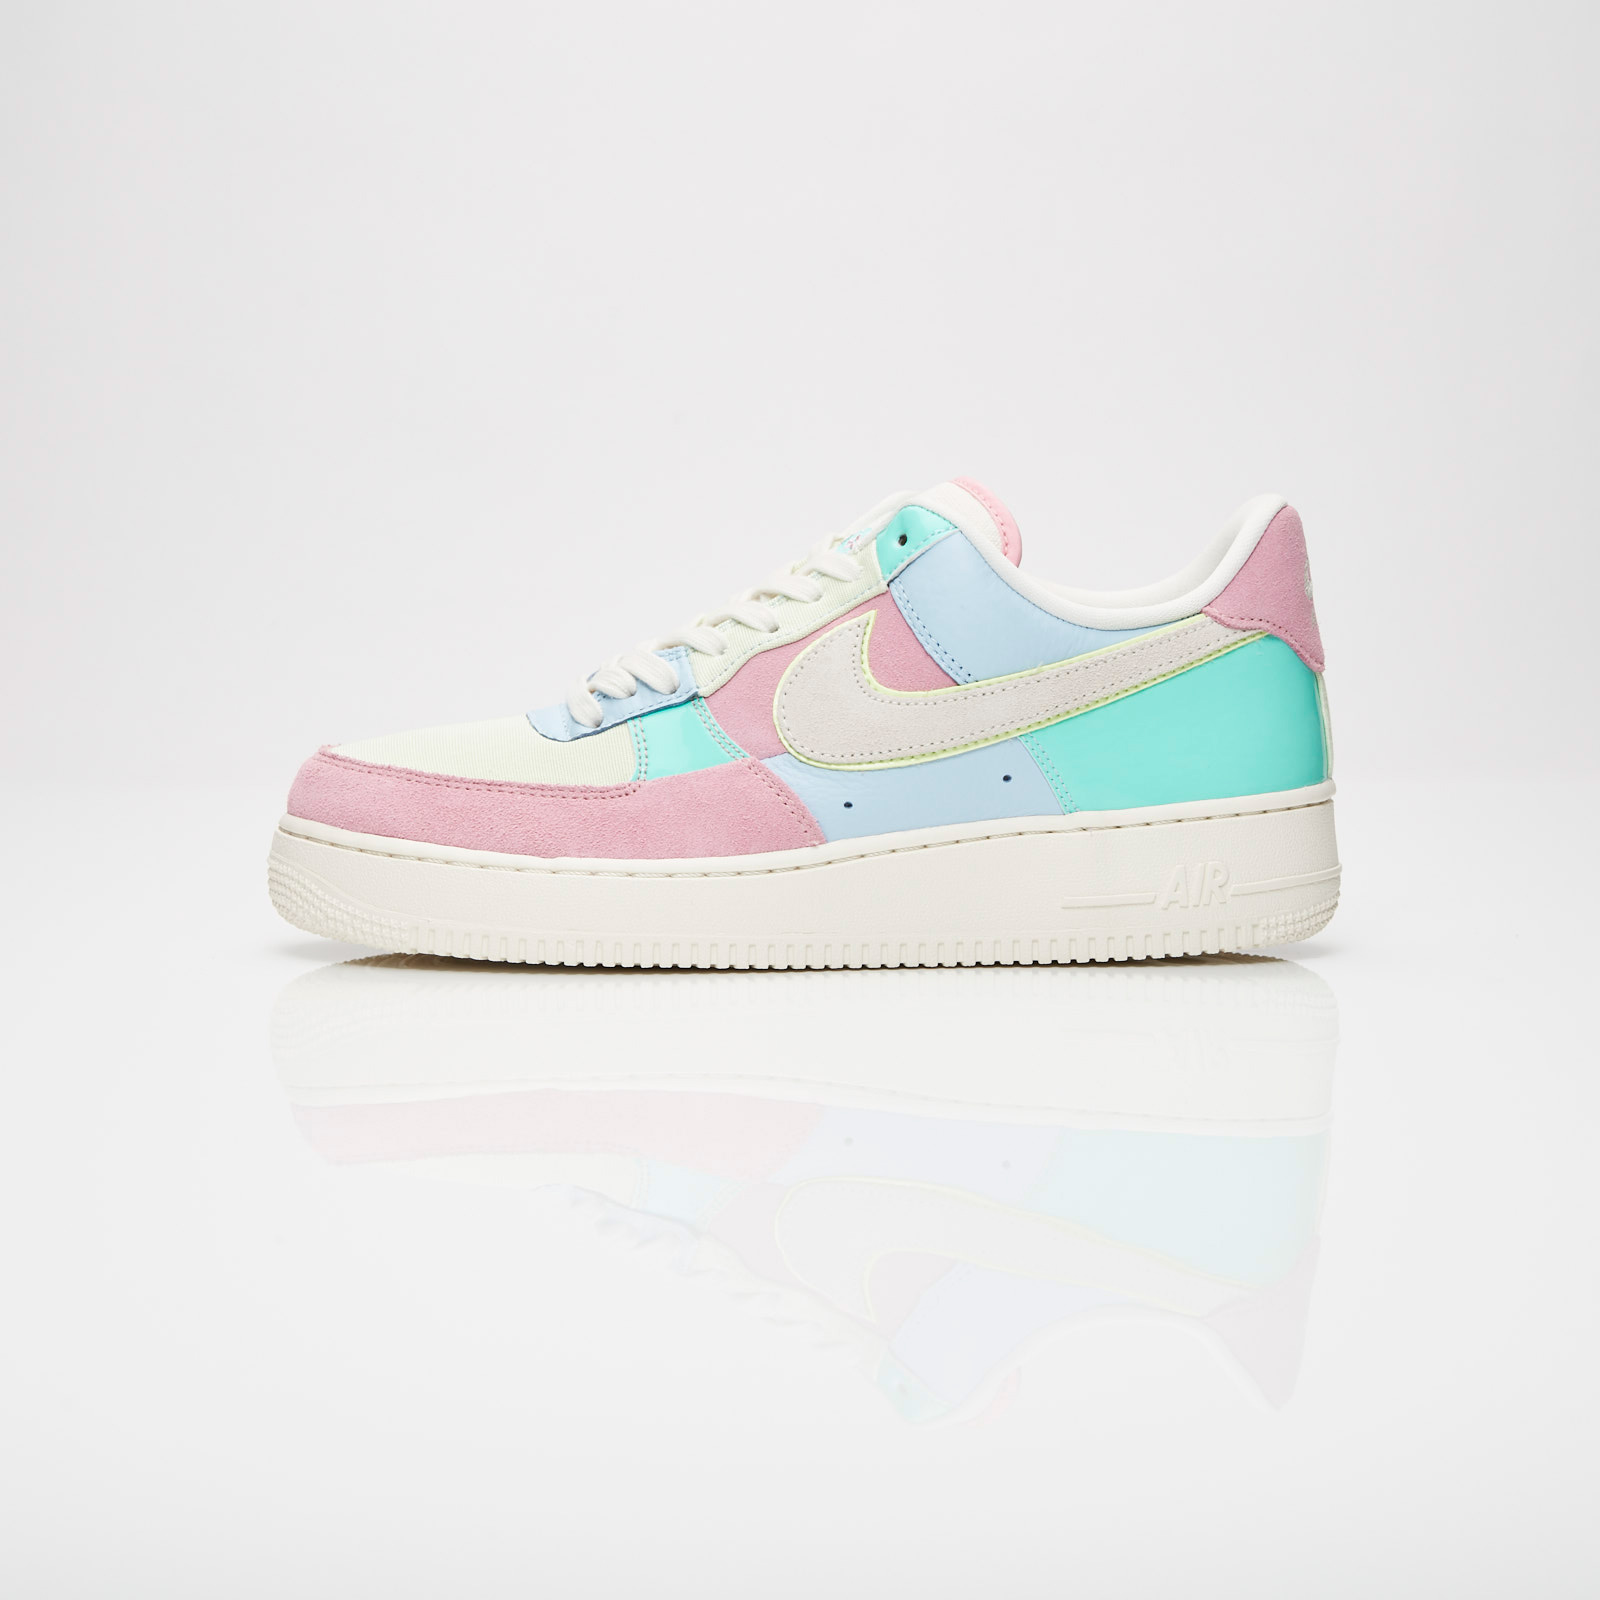 Nike Air Force 1 07 QS Ah8462 400 Sneakersnstuff